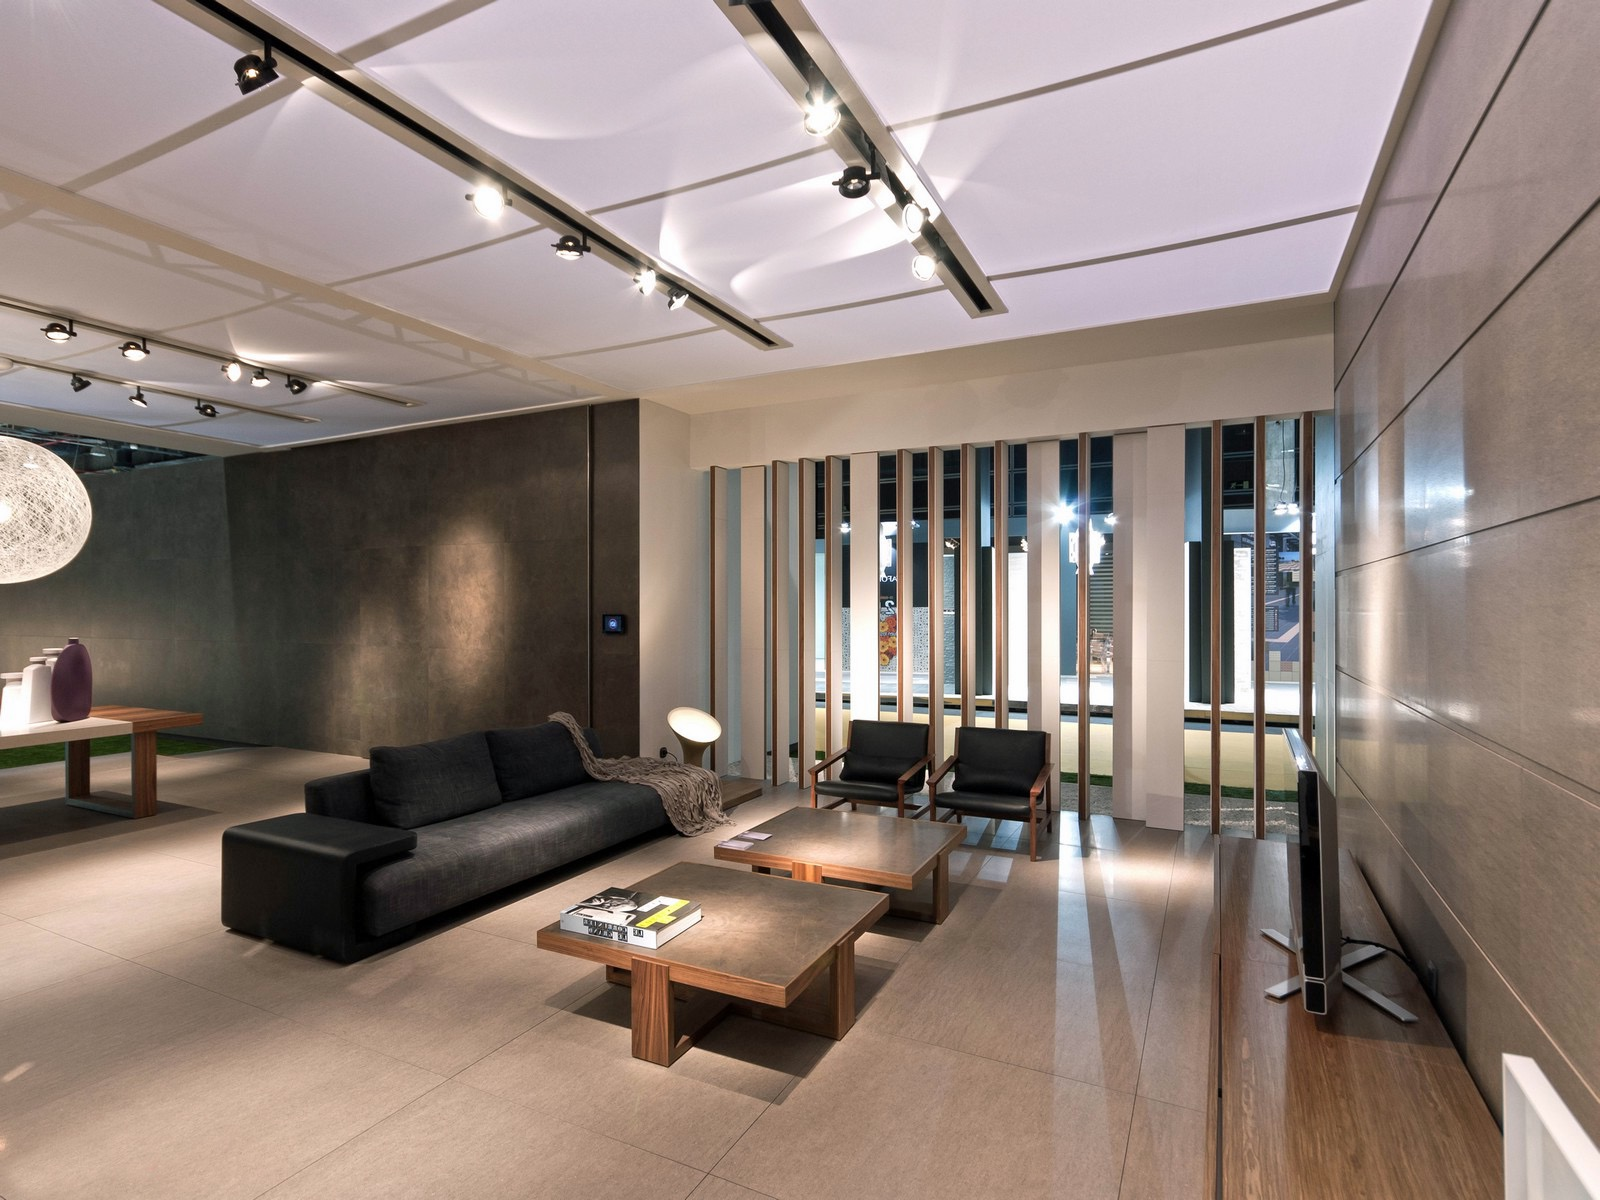 Modern Living Room With Travertine Flooring (View 2 of 15)